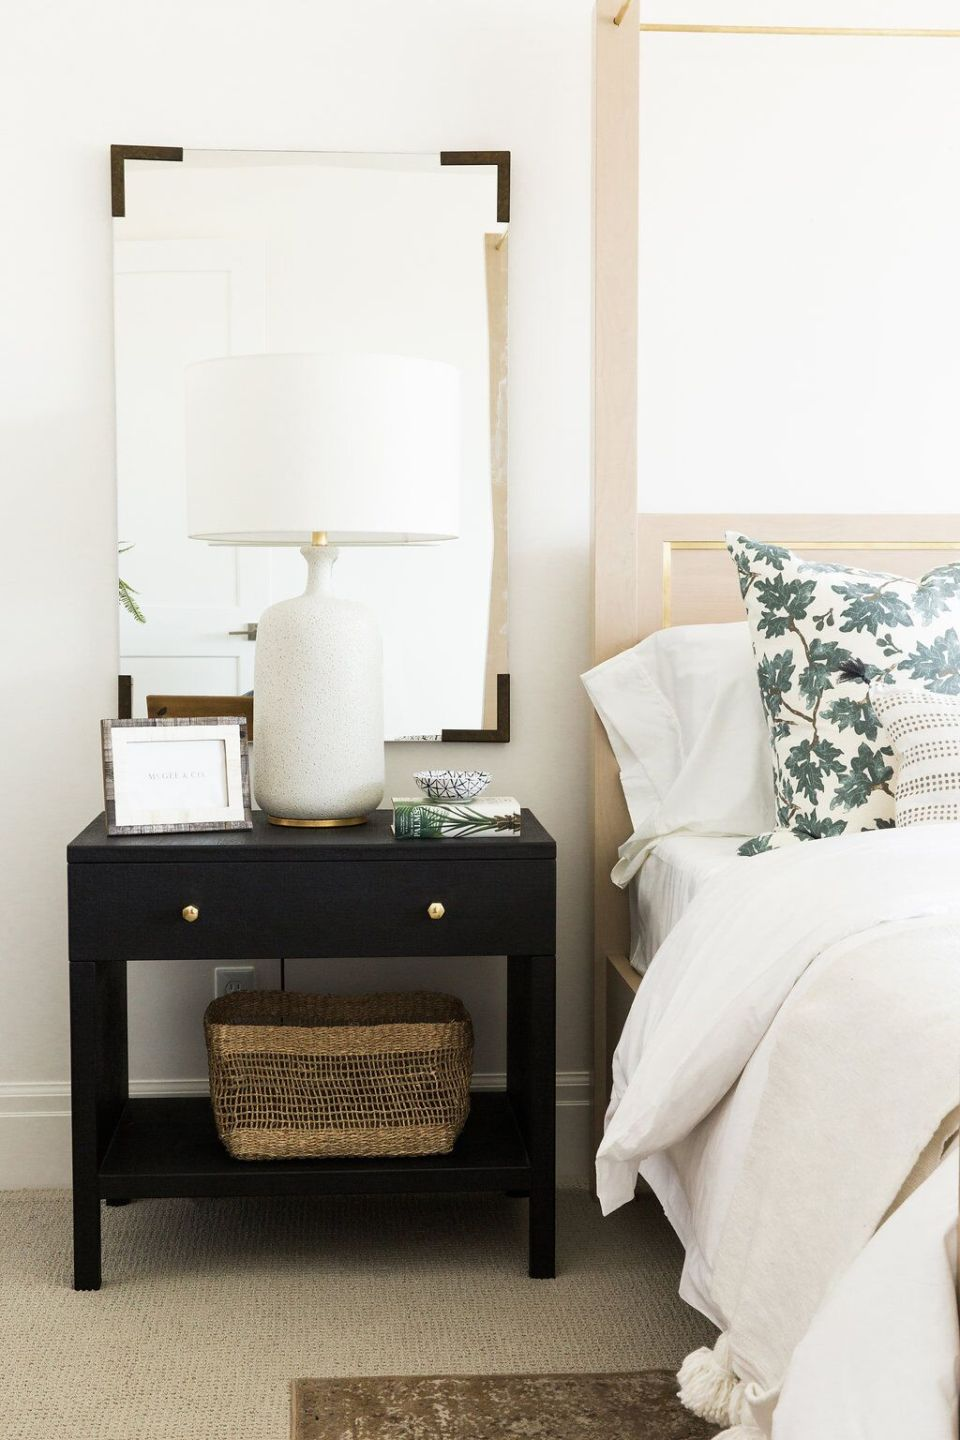 Bedside table styling and de-cluttering spring cleaning